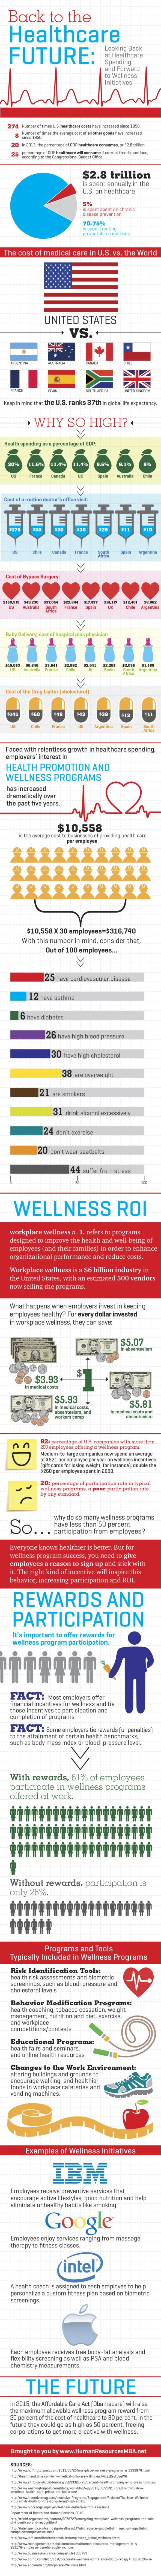 Infographic: The Rising Cost of Healthcare